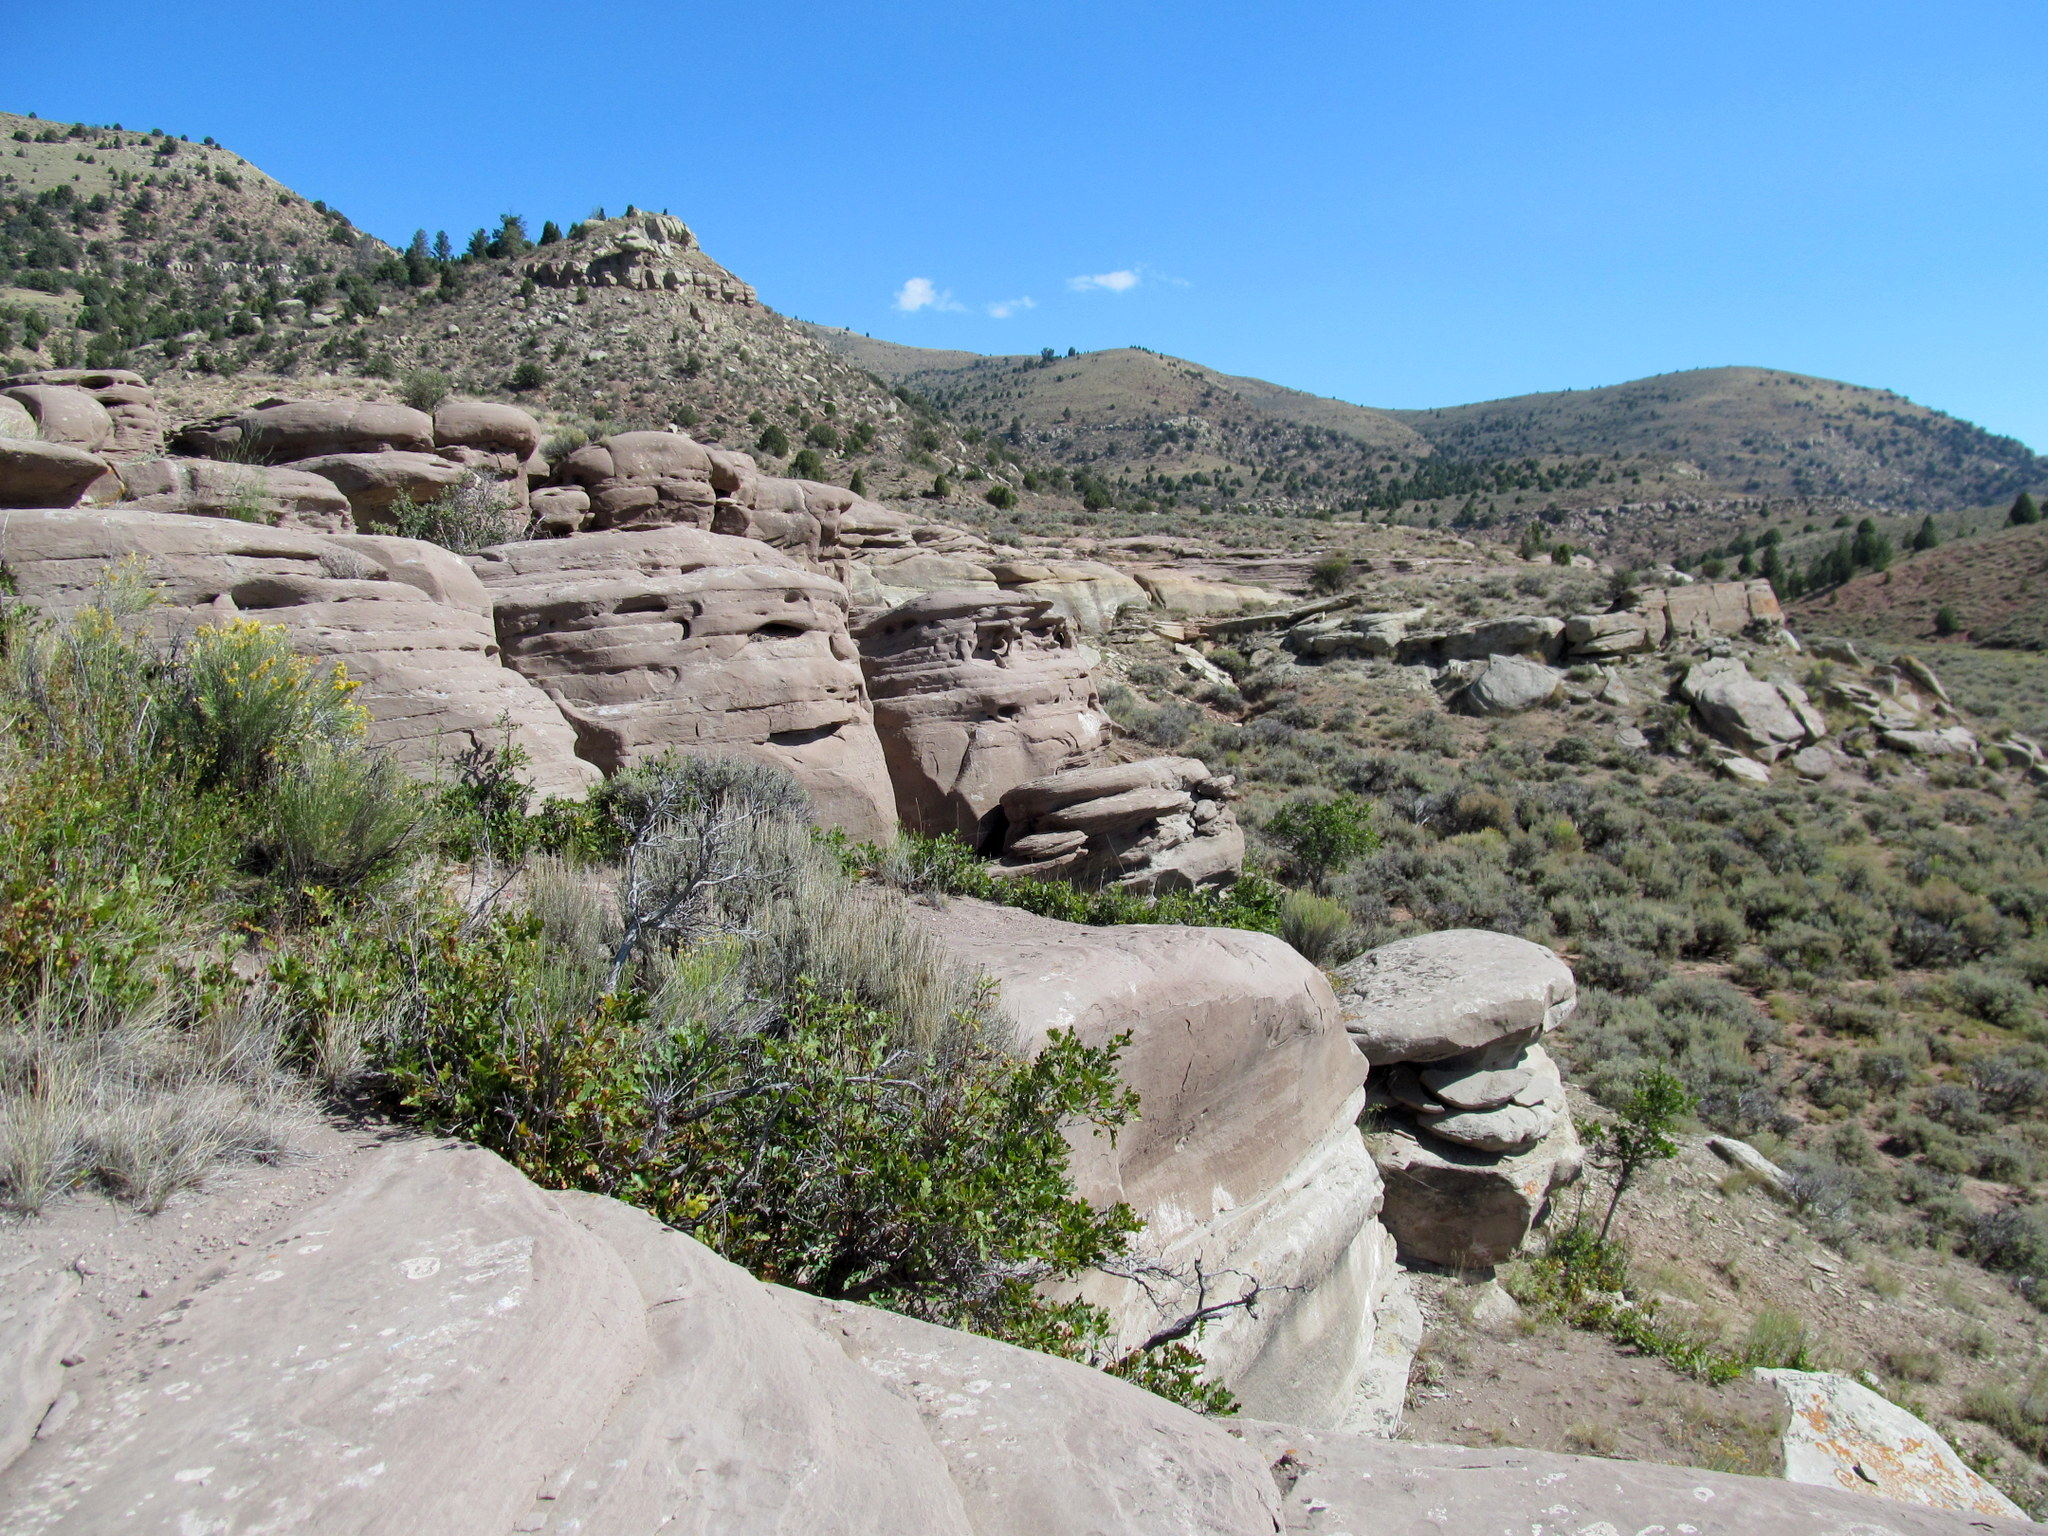 Photo: Sandstone ledges near the rock art